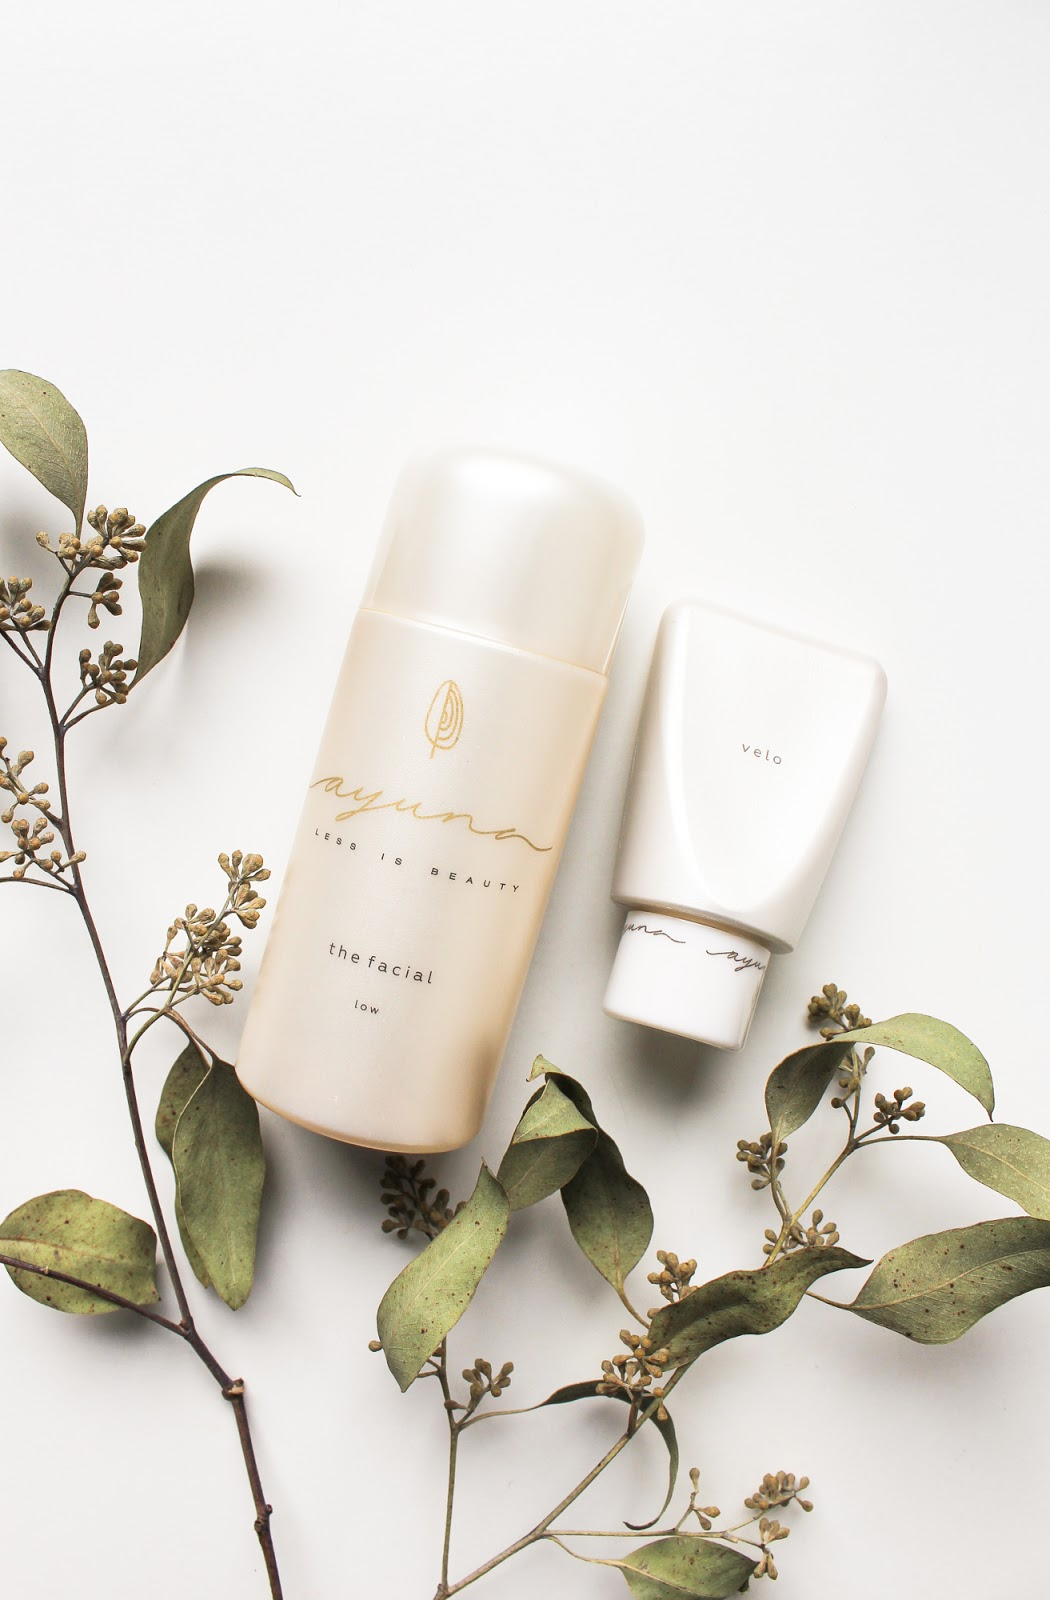 Ayuna May Beauty Discovery Beauty Heroes Velo 6-in-1 Suprastratum Protection, The Facial Low